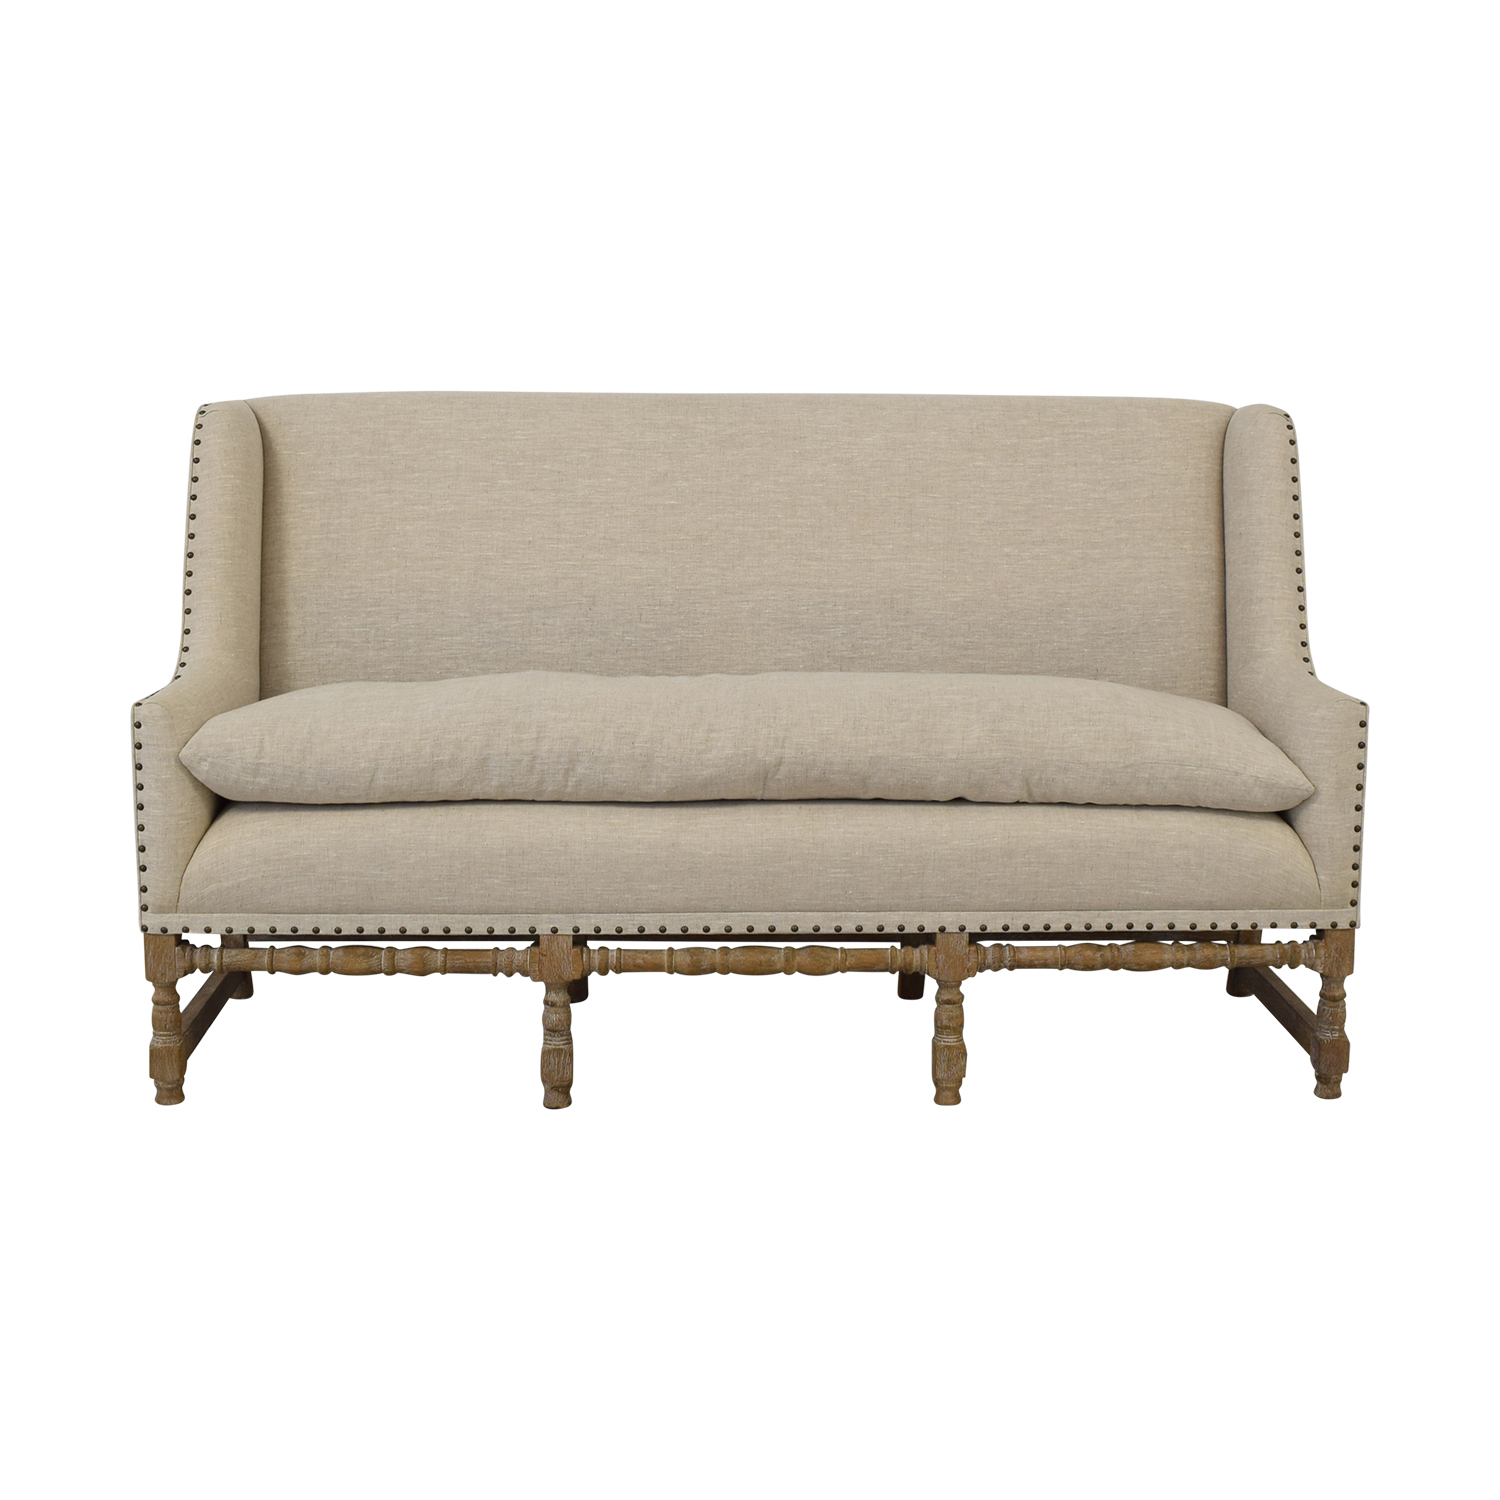 buy Zentique Zentique Linen Upholstered High-Back Banquette Sofa online